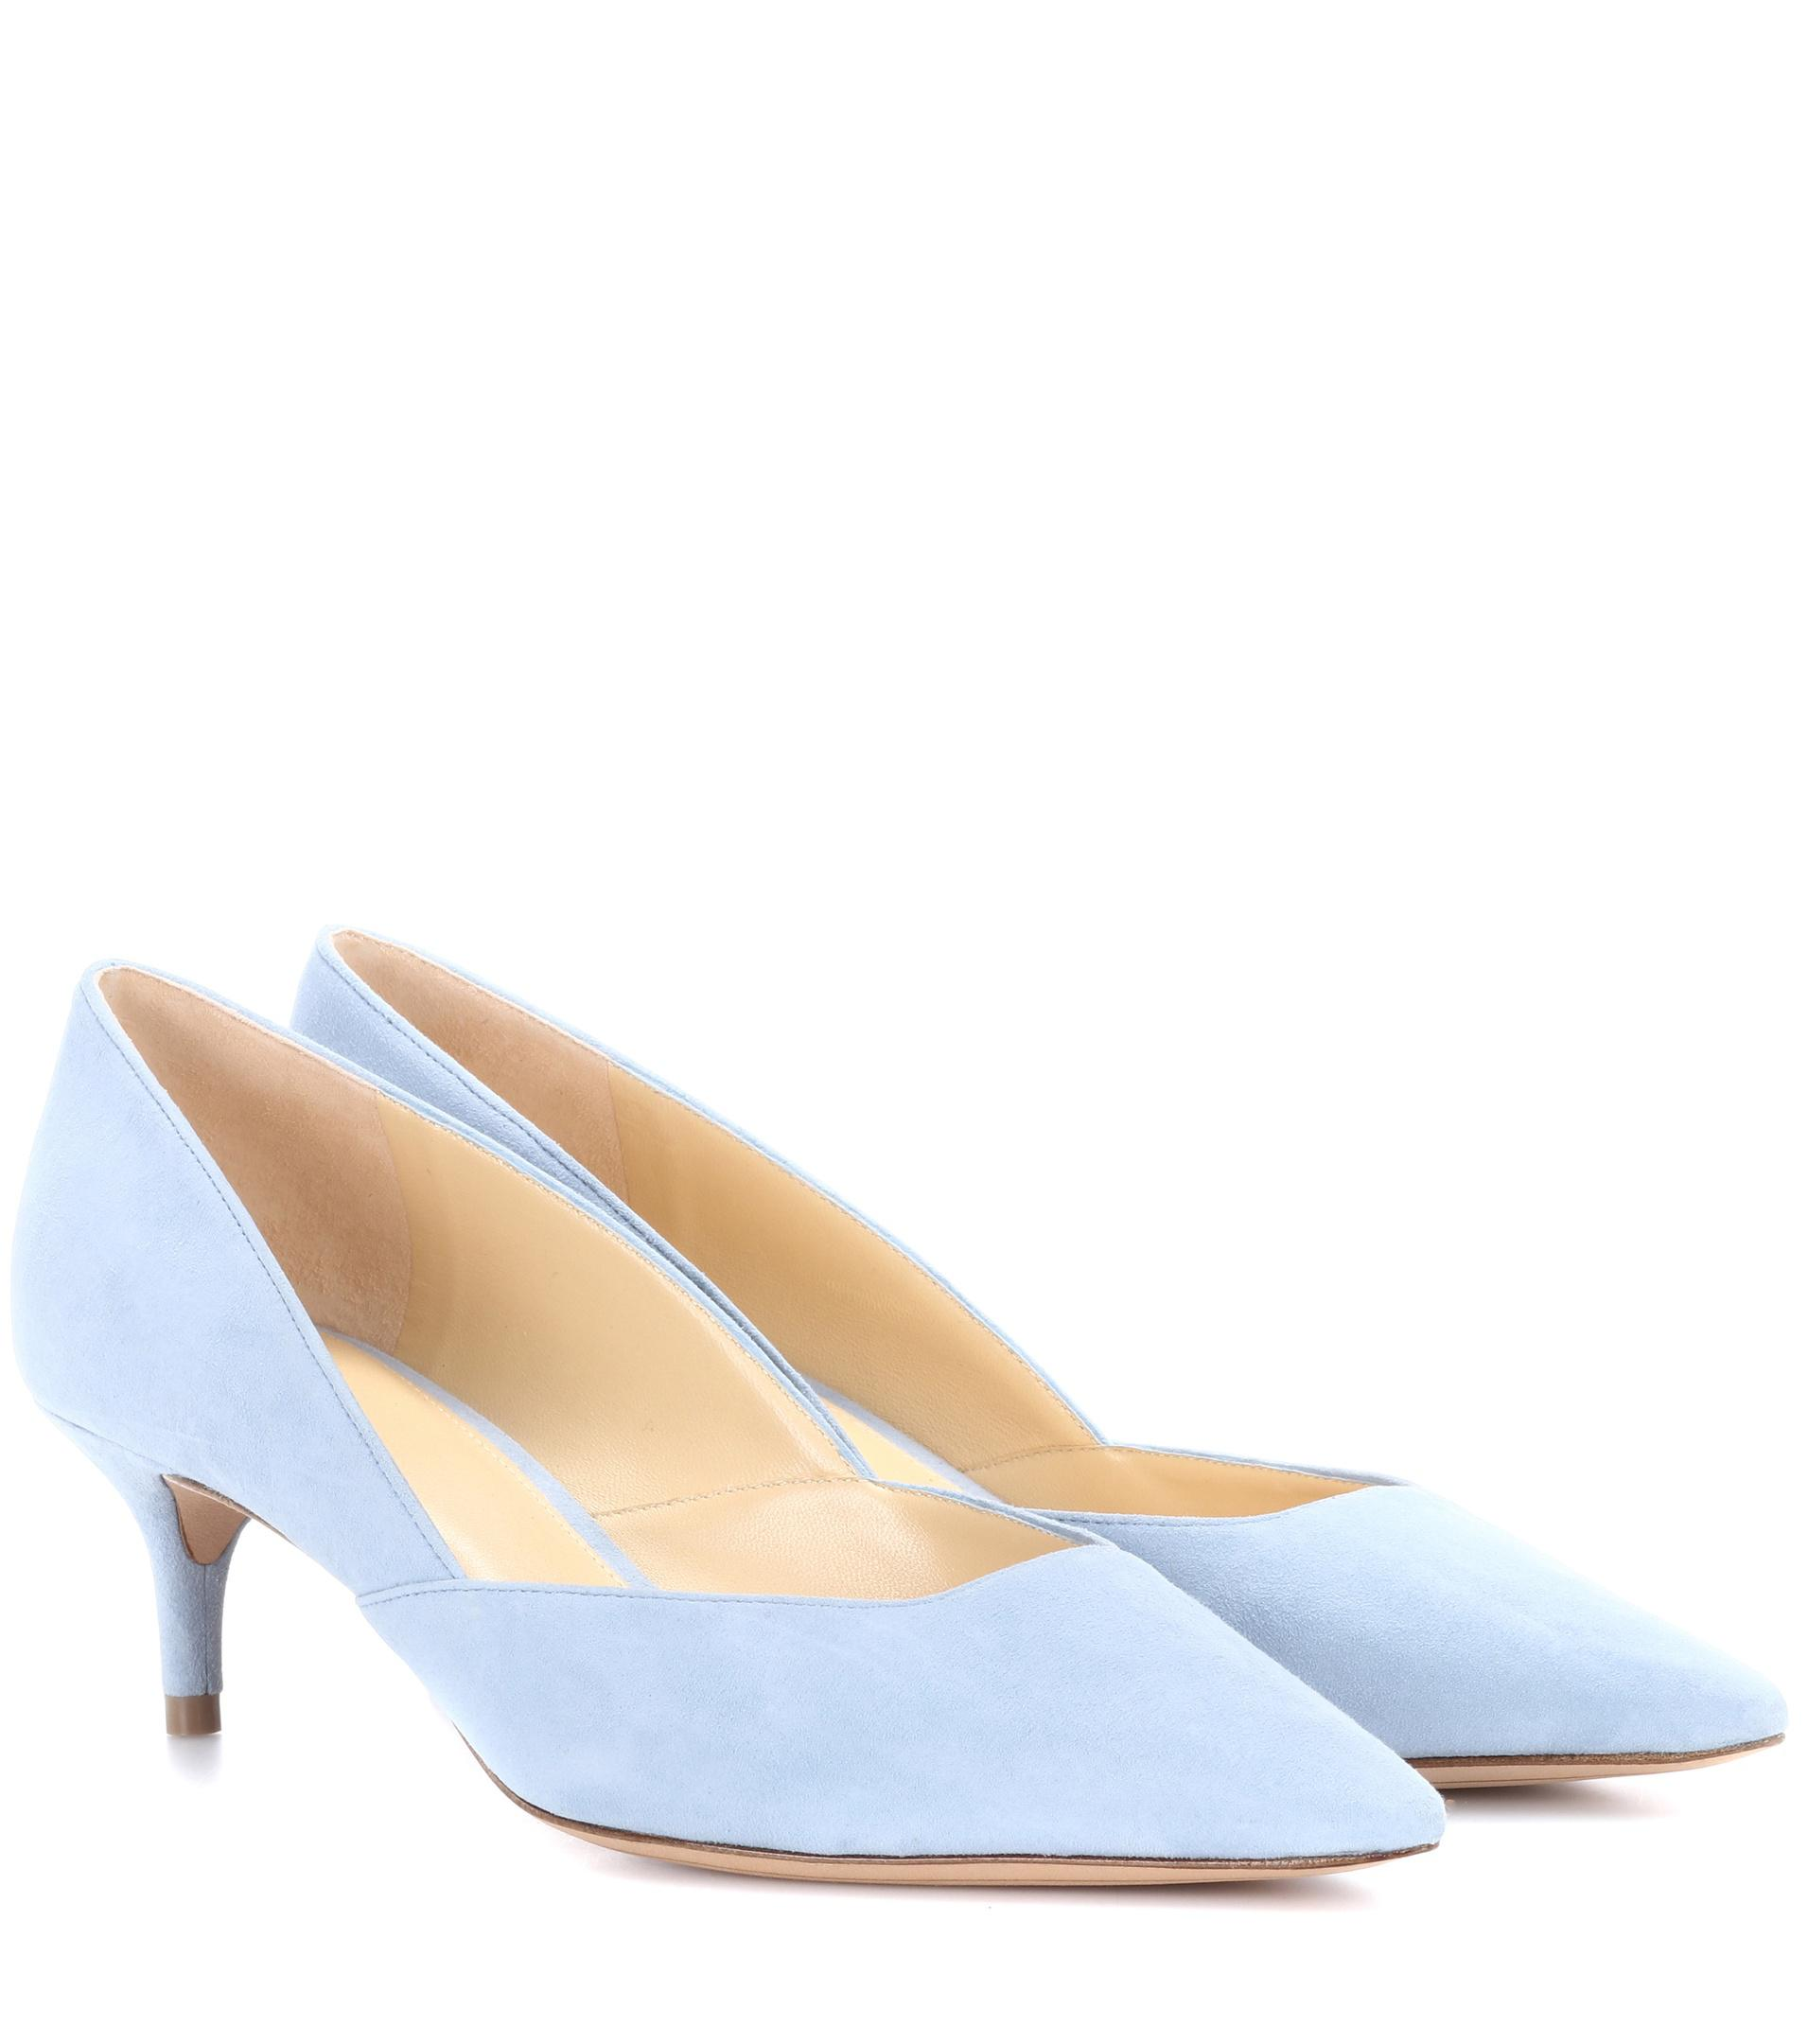 Alexandre Birman Exclusive to mytheresa.com – Margot suede pumps websites cheap price from china cheap online buy cheap explore sale amazon amazon cheap price GvZRBdGzM